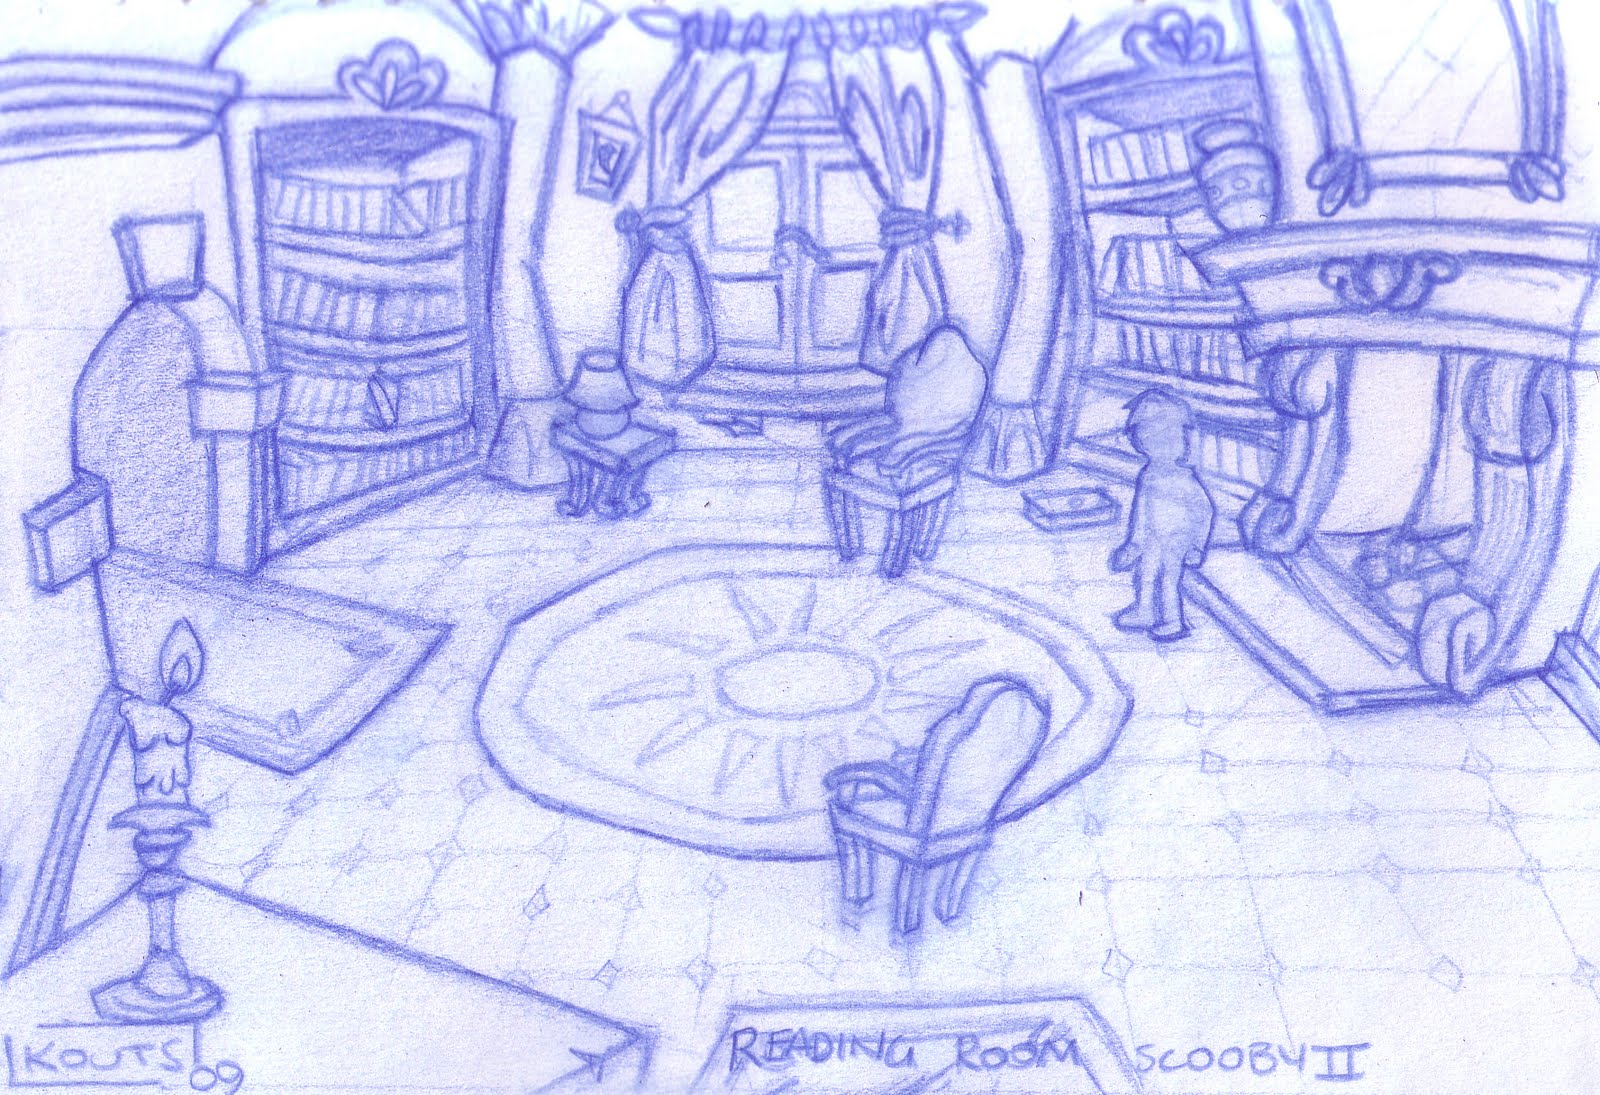 Art of stk scooby doo spooky swamp concept art for The family room kouts in